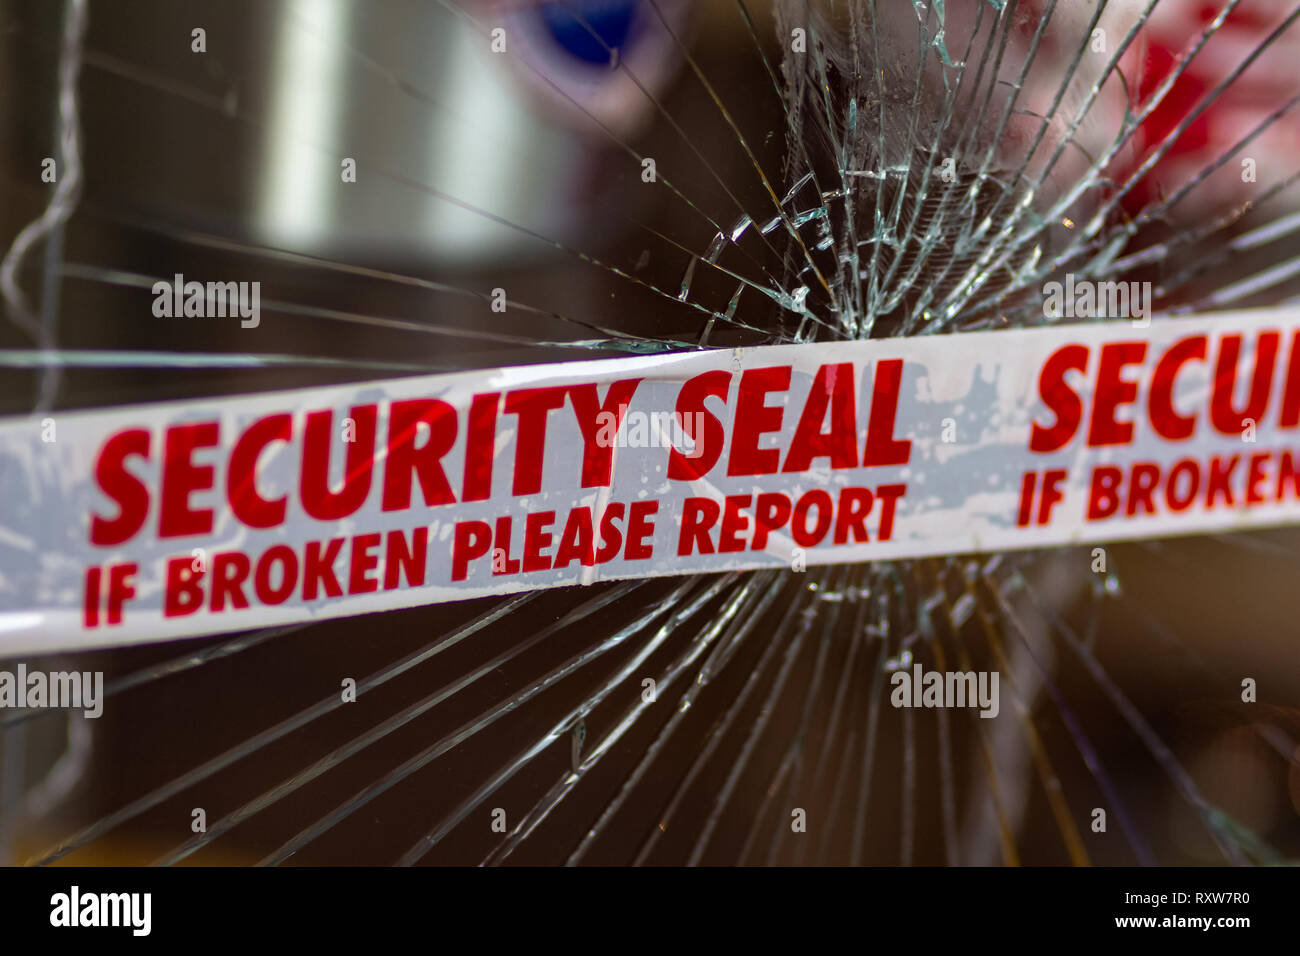 Police Security Seal tape across the broken glass window - Stock Image